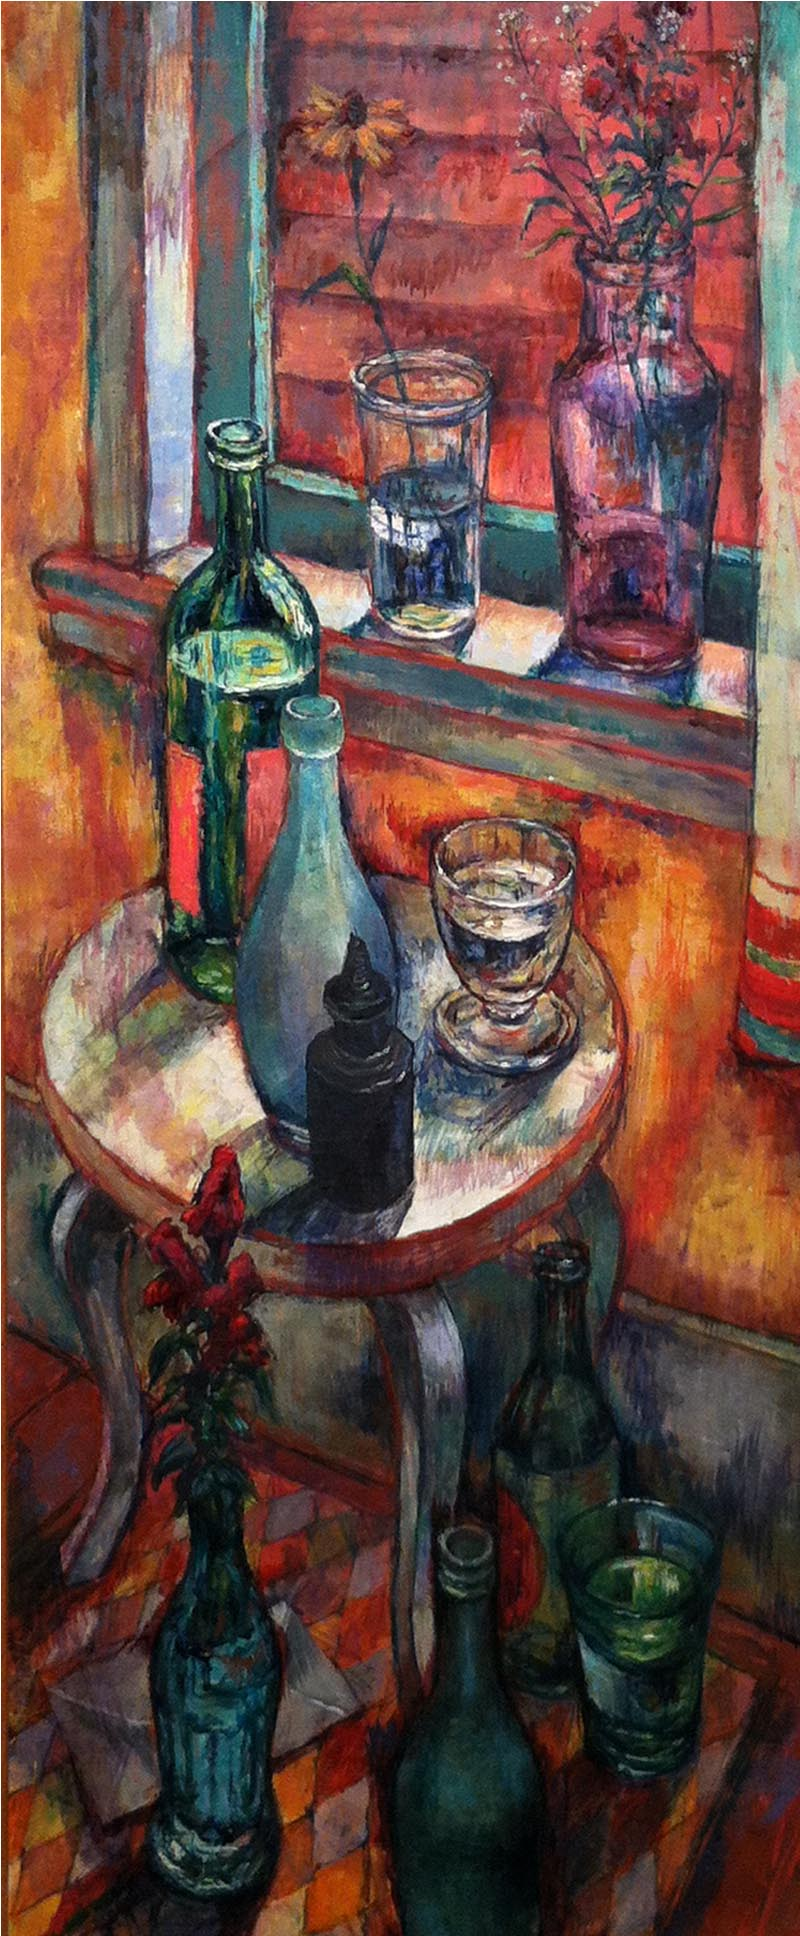 Bottles and Flowers,  c. 1955 oil on canvas, 36 x 15 inches